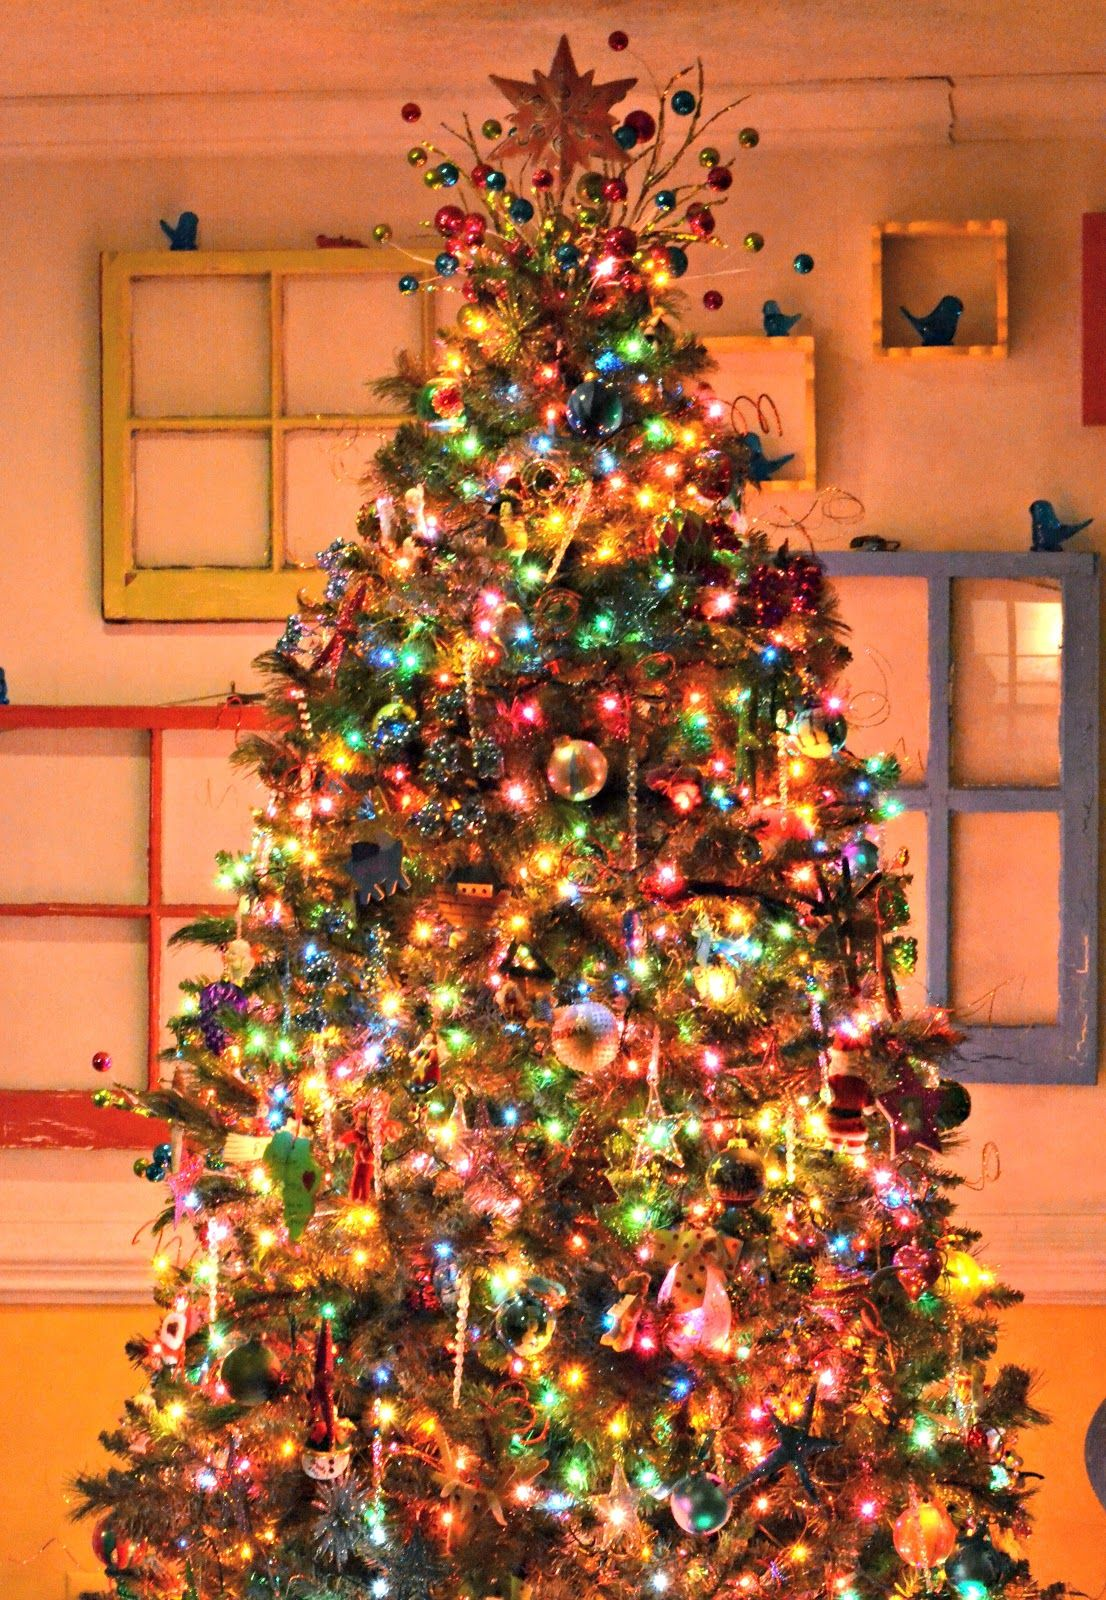 How To Have A Pretty Christmas Tree Even When The Kids Decorate It El2okuuf